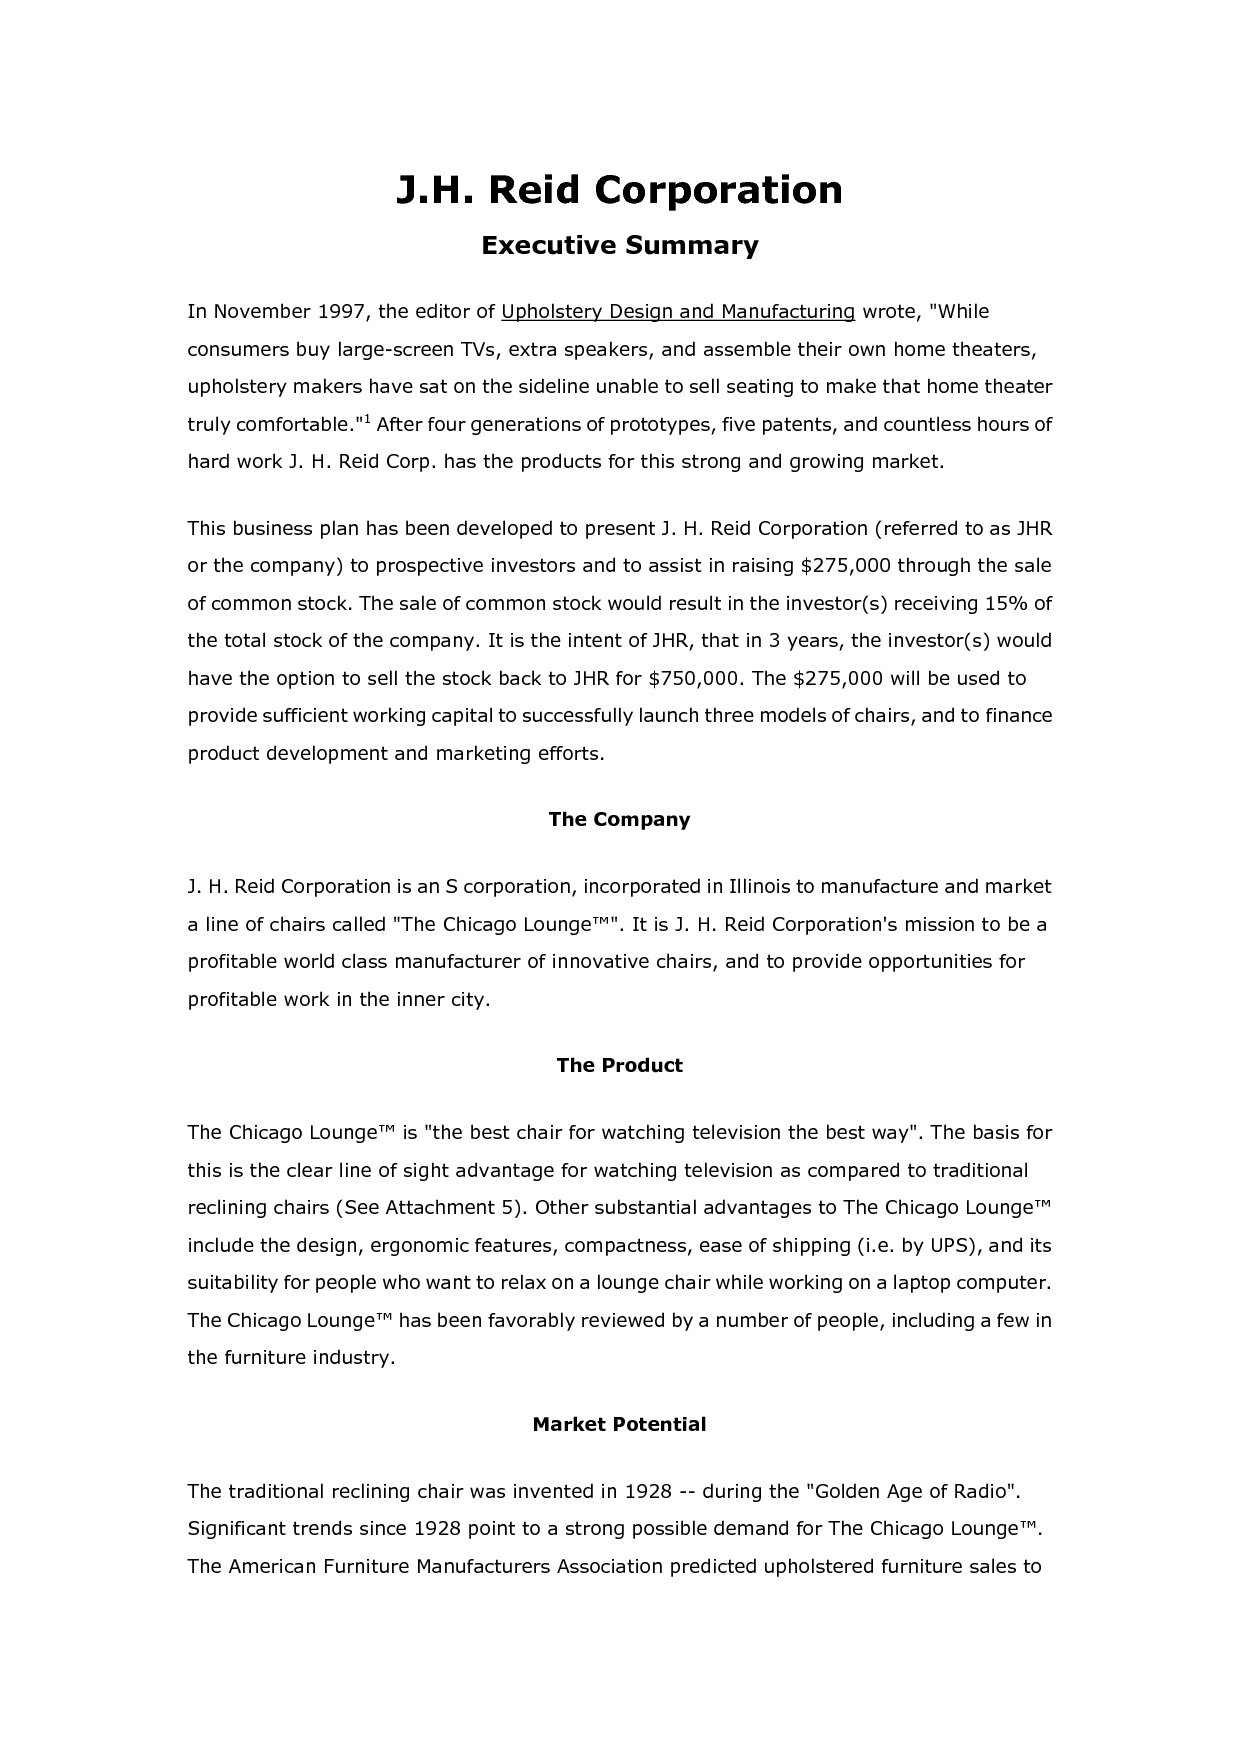 apa sample essays example of apa abstract for research paper how sample proposal essay examples of a proposal essay apa example examples of a proposal essayproposal essays